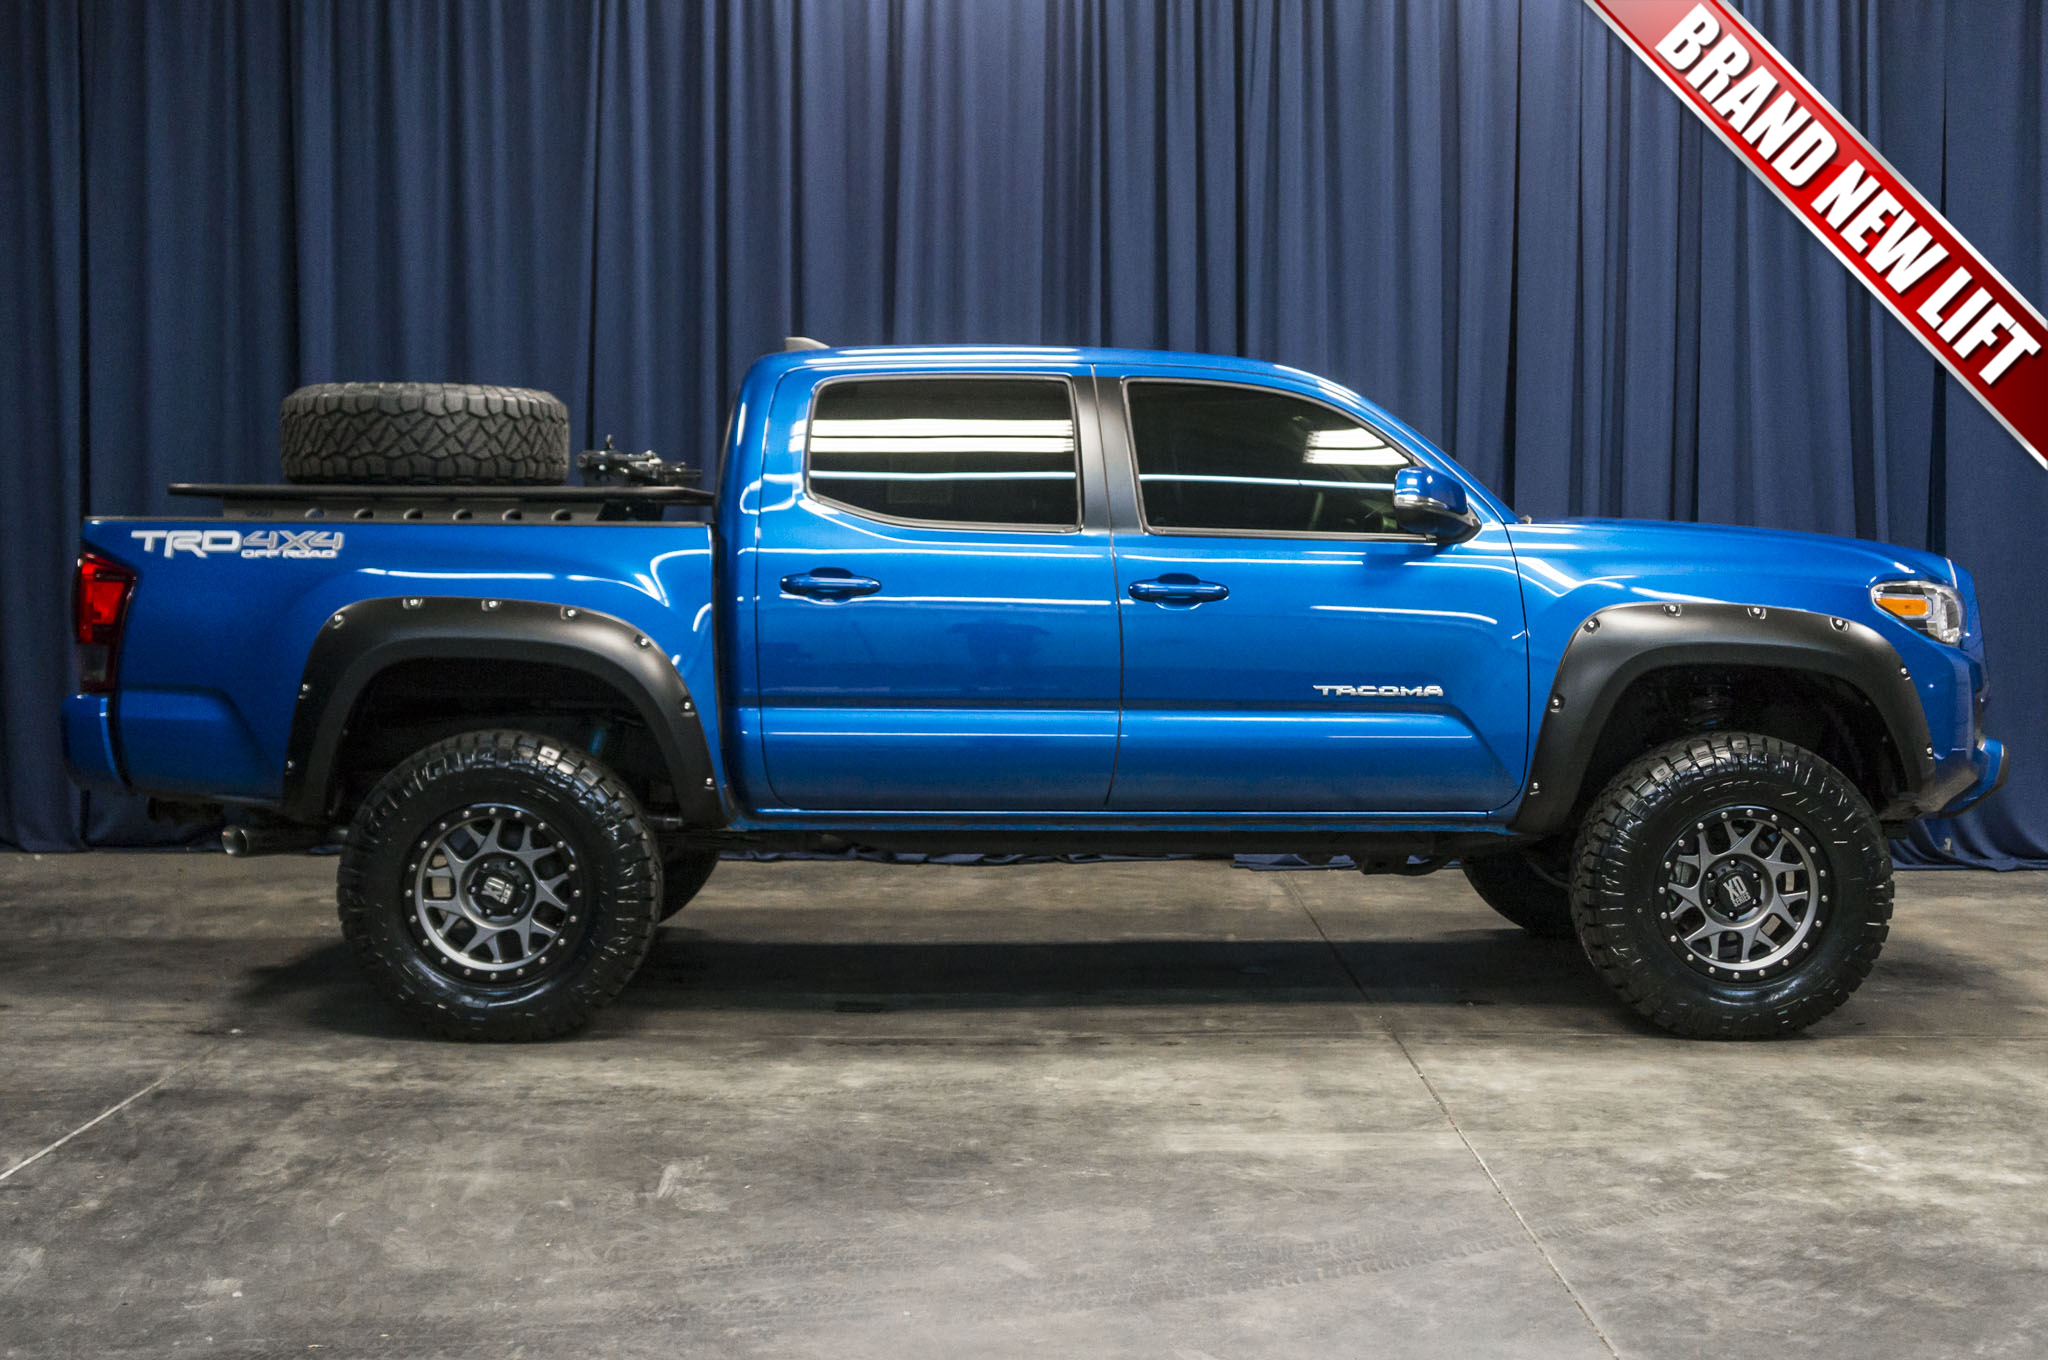 2017 Toyota Tacoma Lifted >> Used Lifted 2017 Toyota Tacoma Trd Off Road 4x4 Truck For